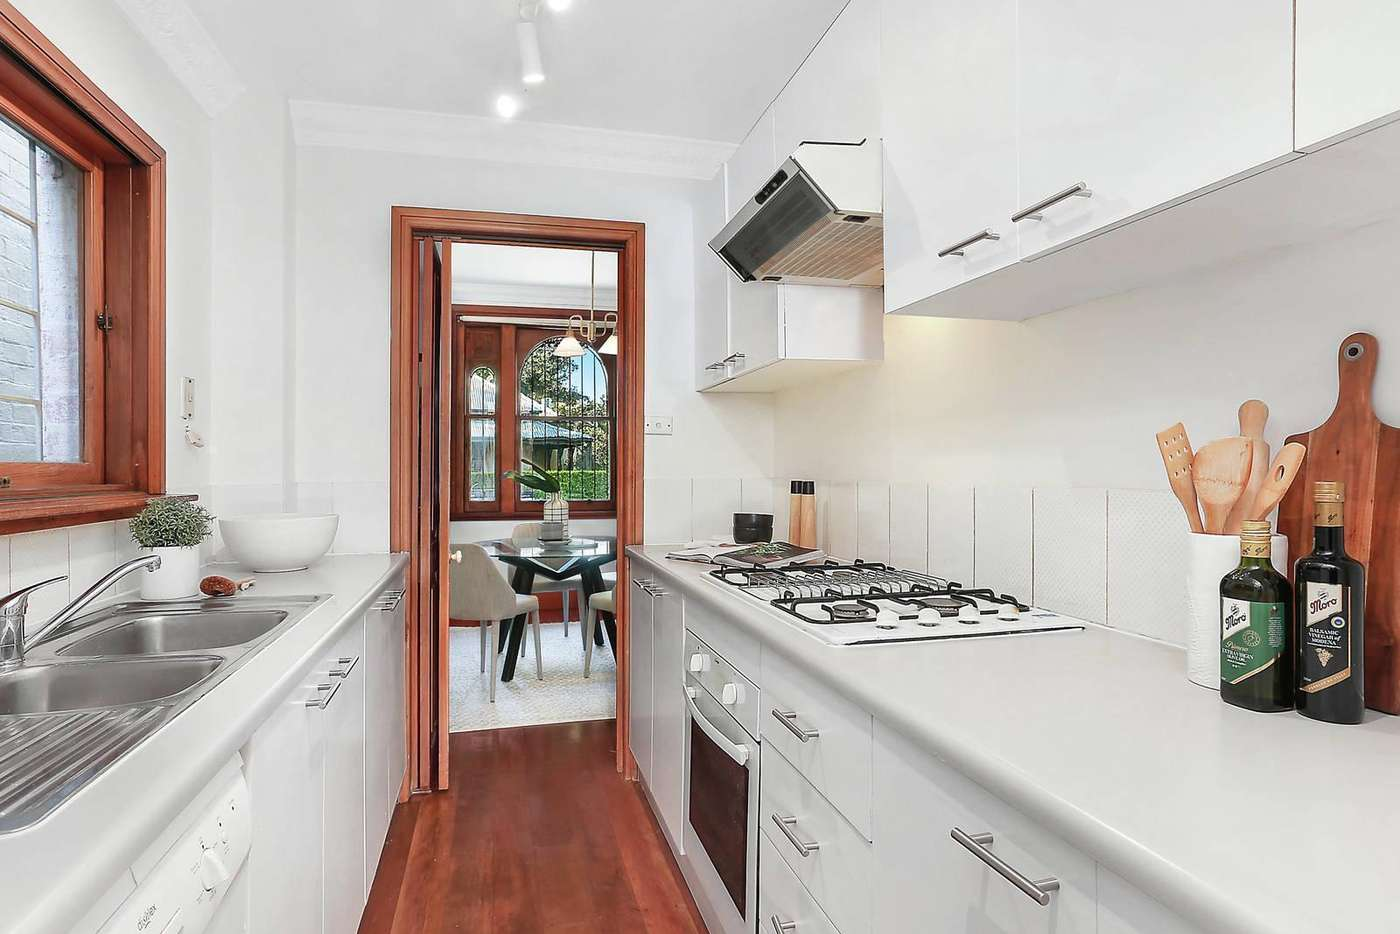 Fifth view of Homely house listing, 18 Clare Street, Rozelle NSW 2039